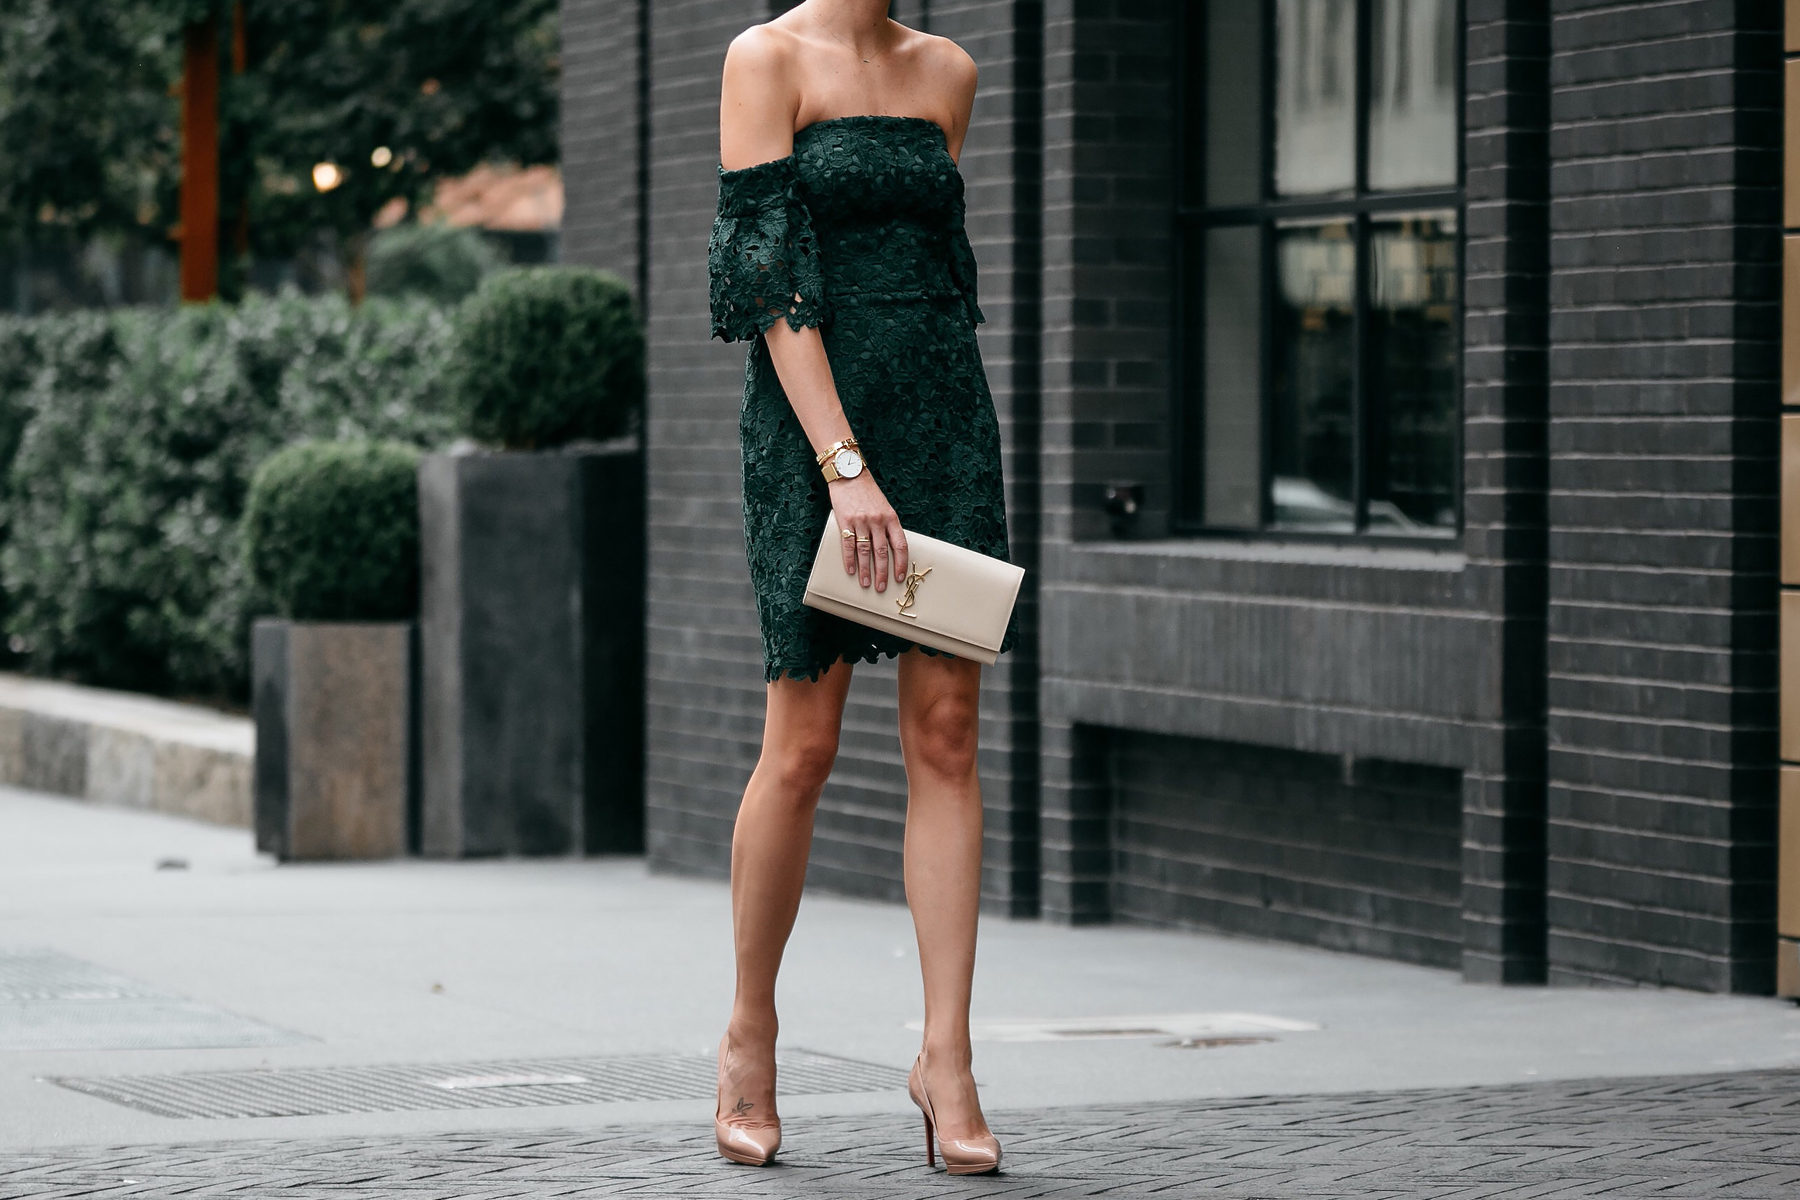 Club Monaco Off-the-Shoulder Green Lace Dress Saint Laurent Monogram Clutch Christian Louboutin Nude Pumps Fashion Jackson Dallas Blogger Fashion Blogger Street Style